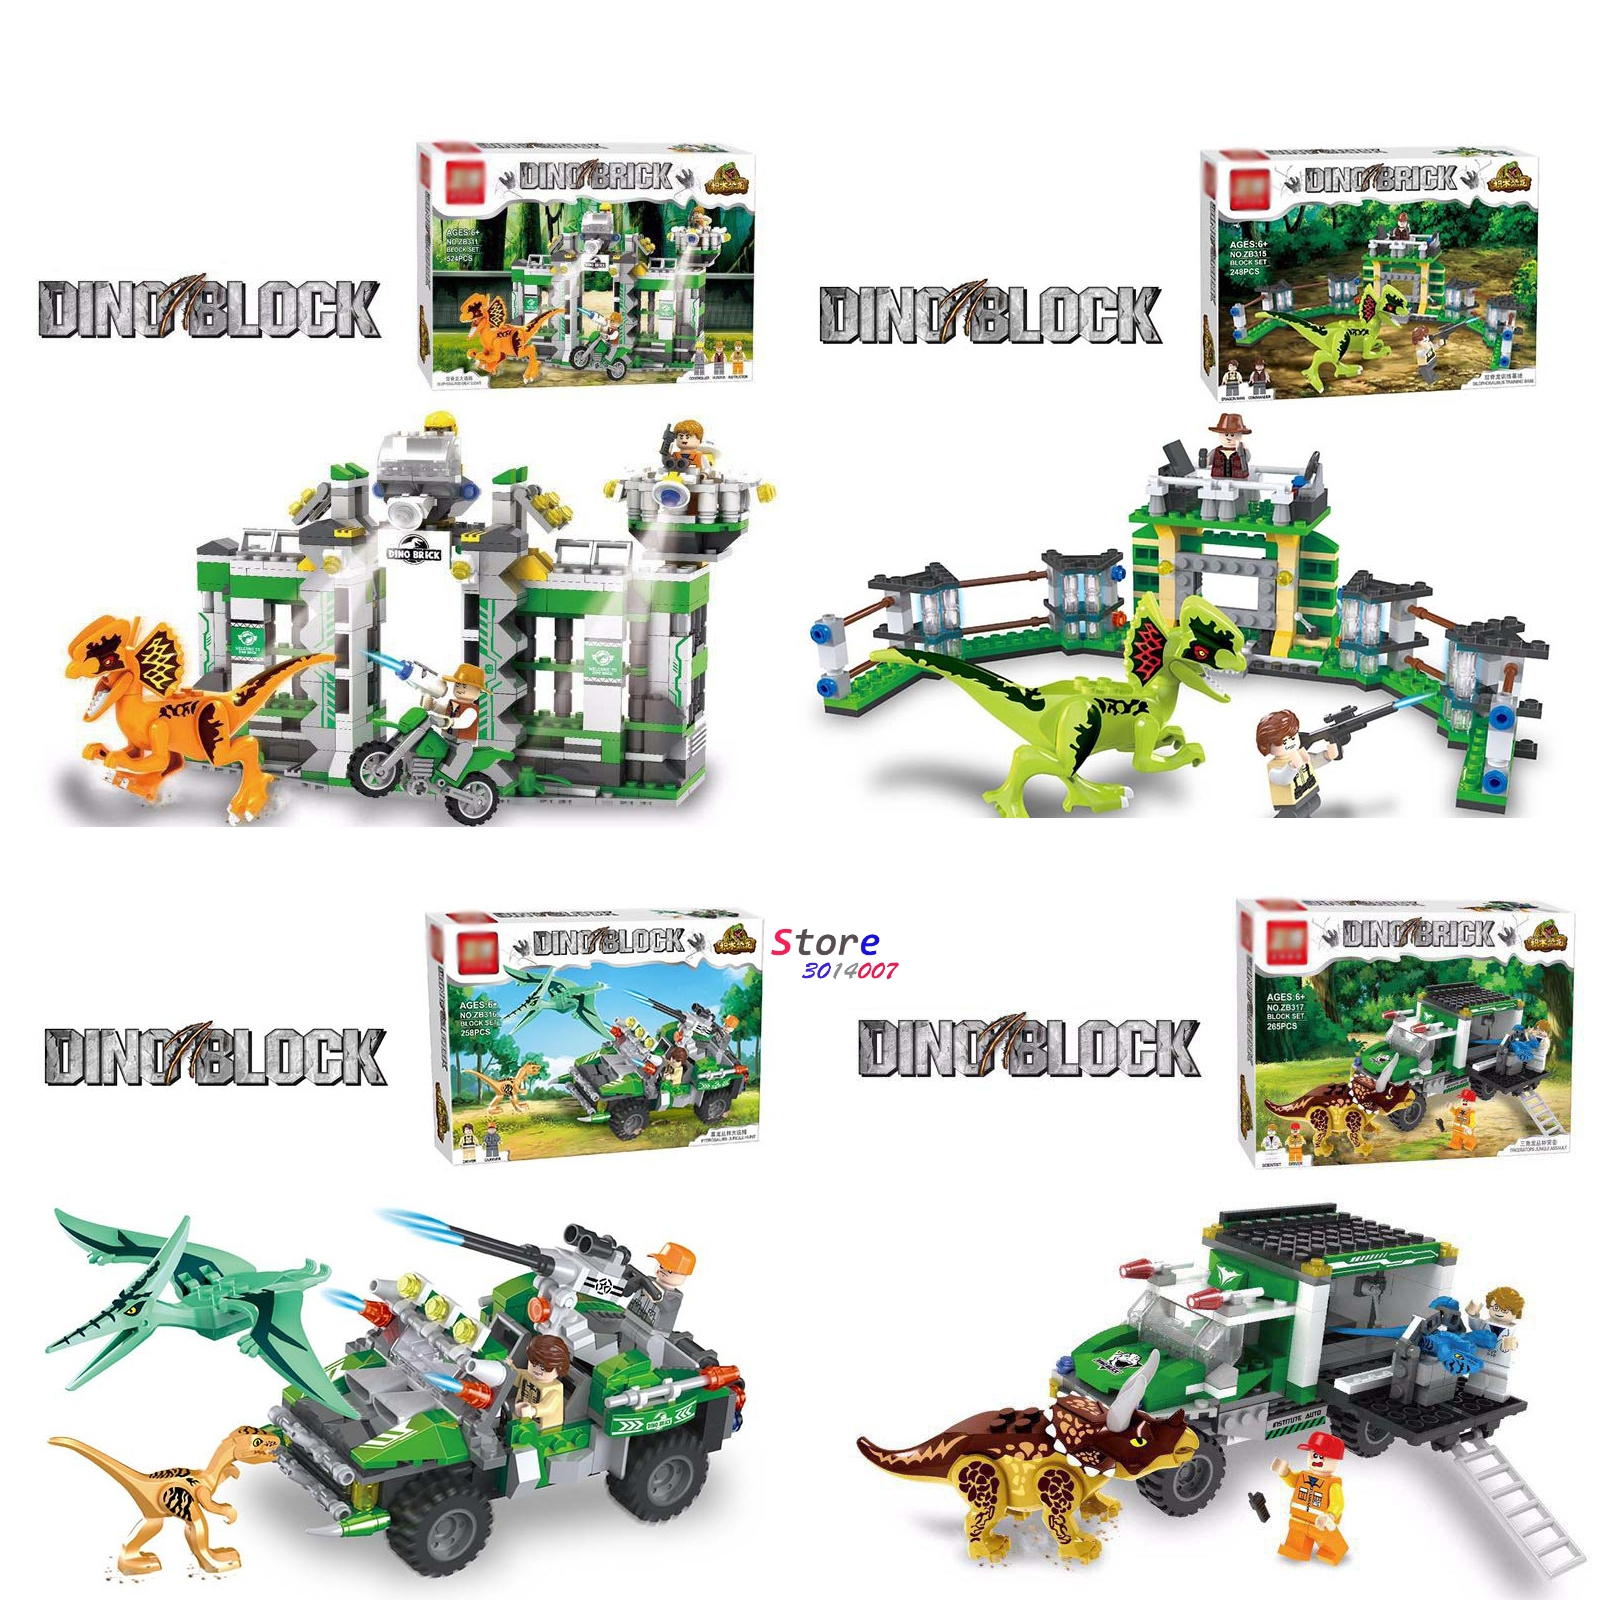 1/Set Jurassic World Tyrannosaurus Building Blocks Dinosaur Dilophosaurus Flee Dinosaur Motorcycle bricks toys for children gift bwl 01 tyrannosaurus dinosaur skeleton model excavation archaeology toy kit white